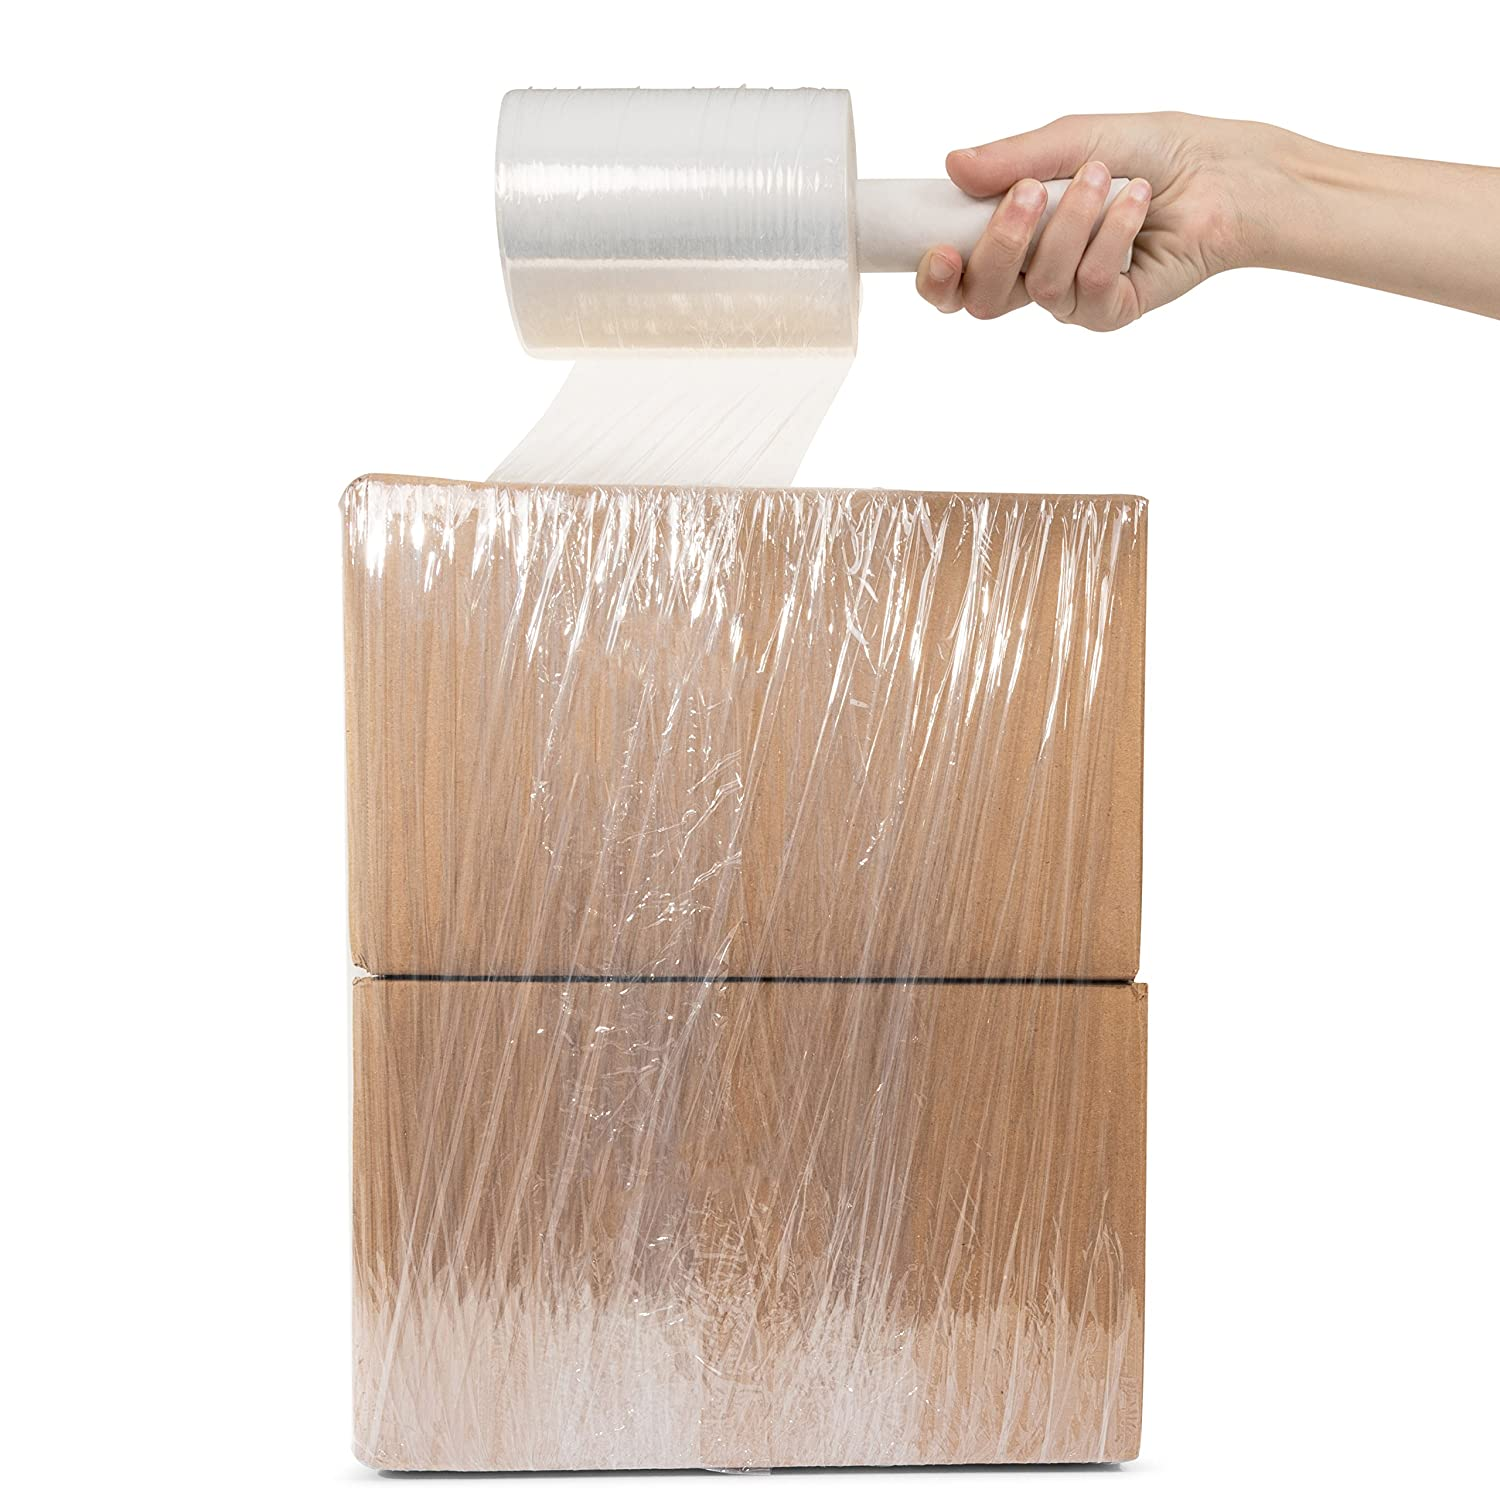 80 Gauge Extra Thick Pallets Packing Wrap Mini Hand Plastic Wrap Moving Boxes Industrial Strength Clear Plastic Pallet Shrink Film Furniture Stretch WRAP Self-Dispense 5 x 1000 Roll